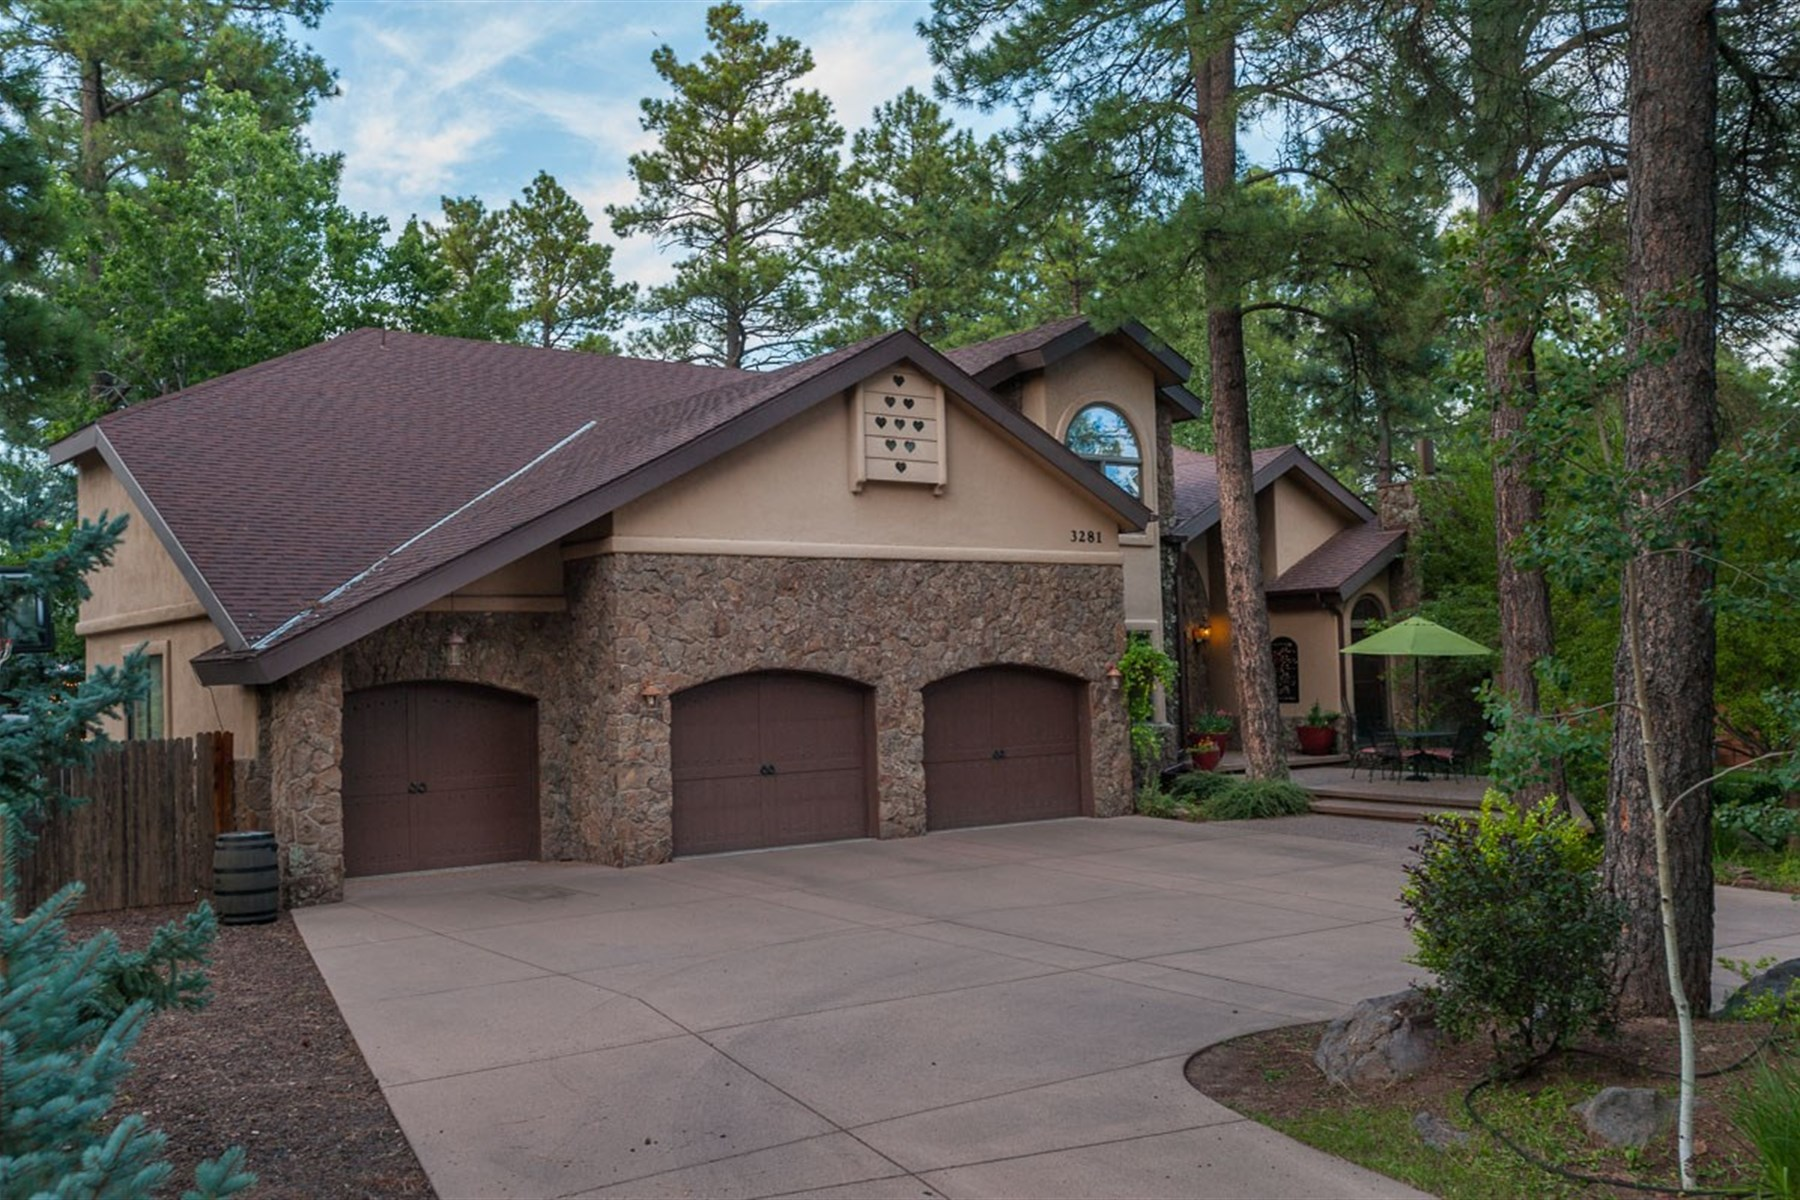 Vivienda unifamiliar por un Venta en Immaculate Home Rivals Resort-Style Living. 3281 S Little Dr Flagstaff, Arizona 86005 Estados Unidos